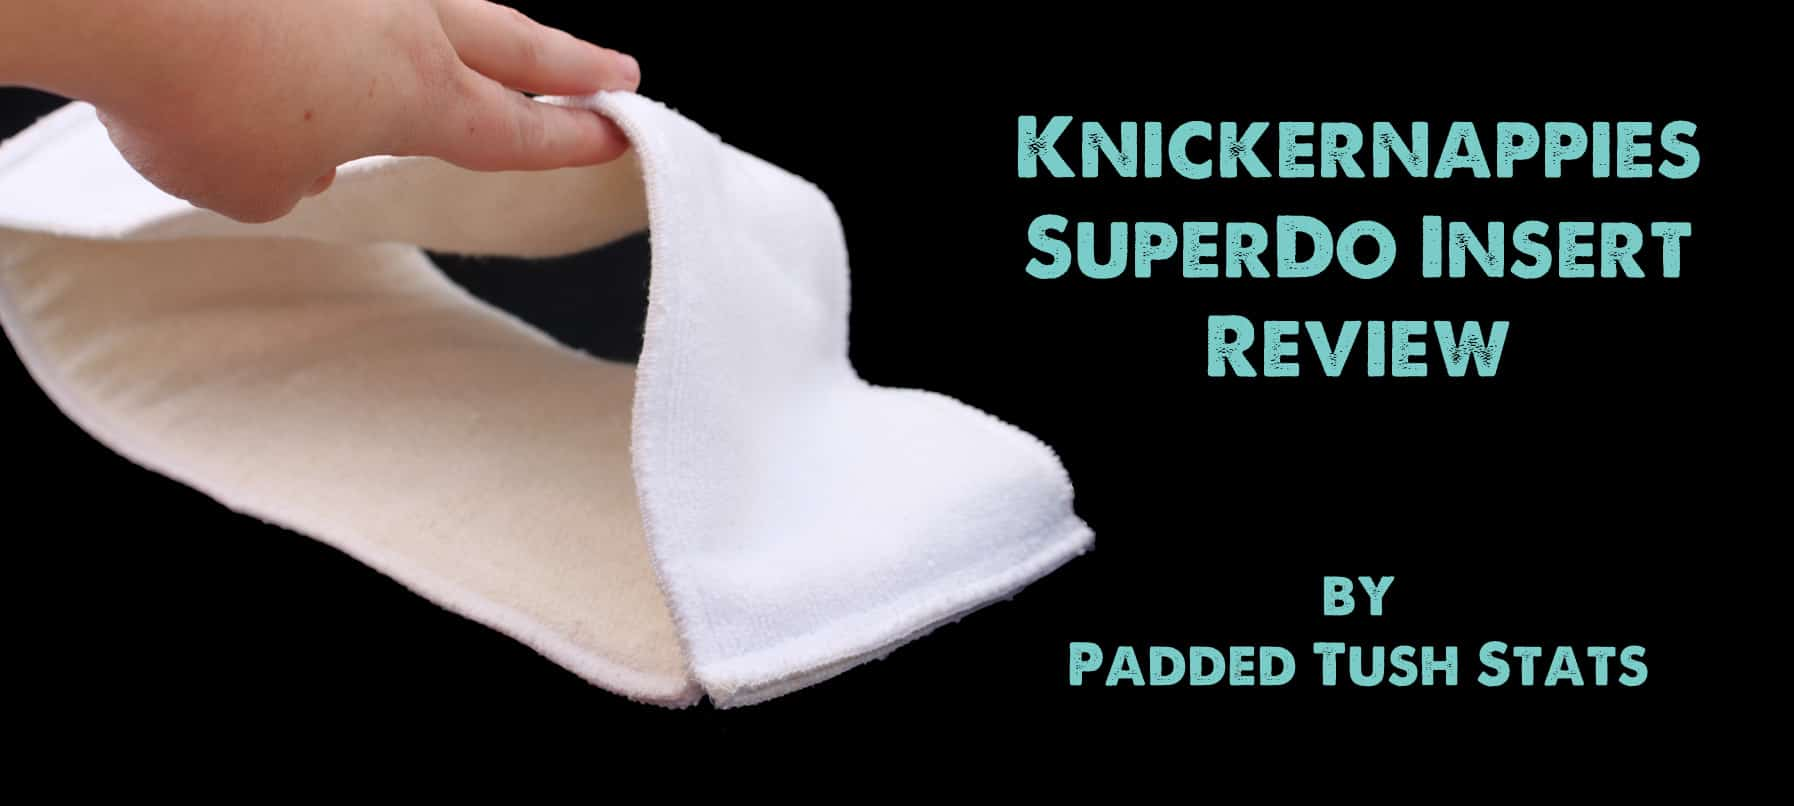 Knickernappies Superdo Insert Review